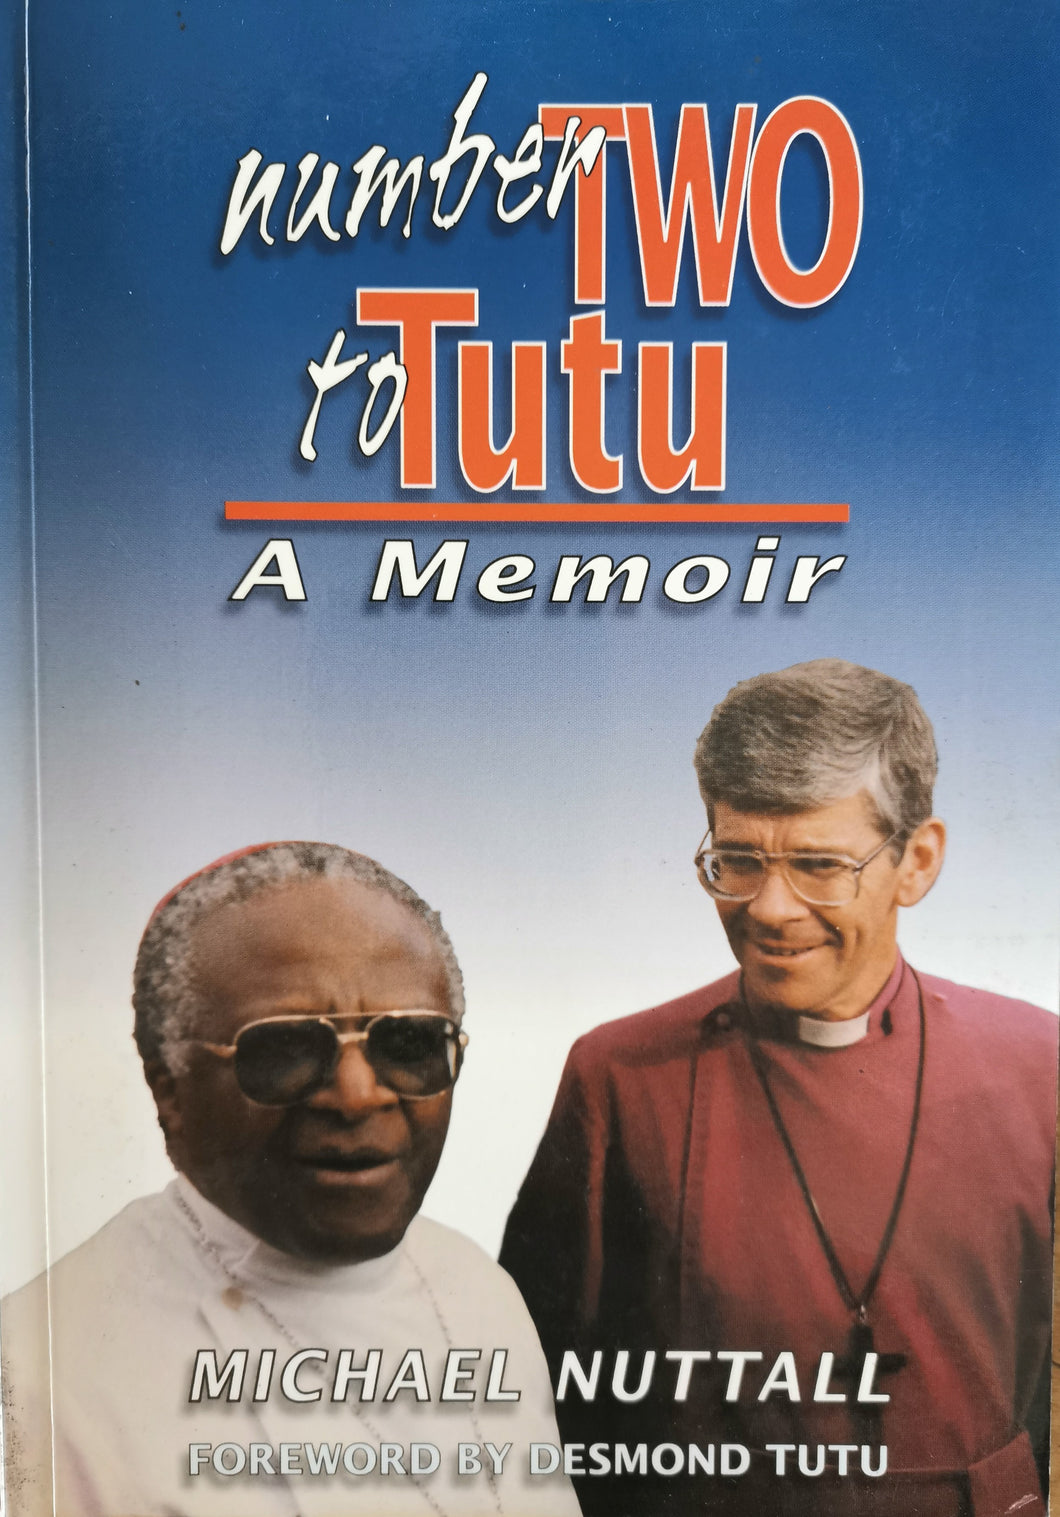 Number Two to Tutu - A Memoir by Michael Nuttall